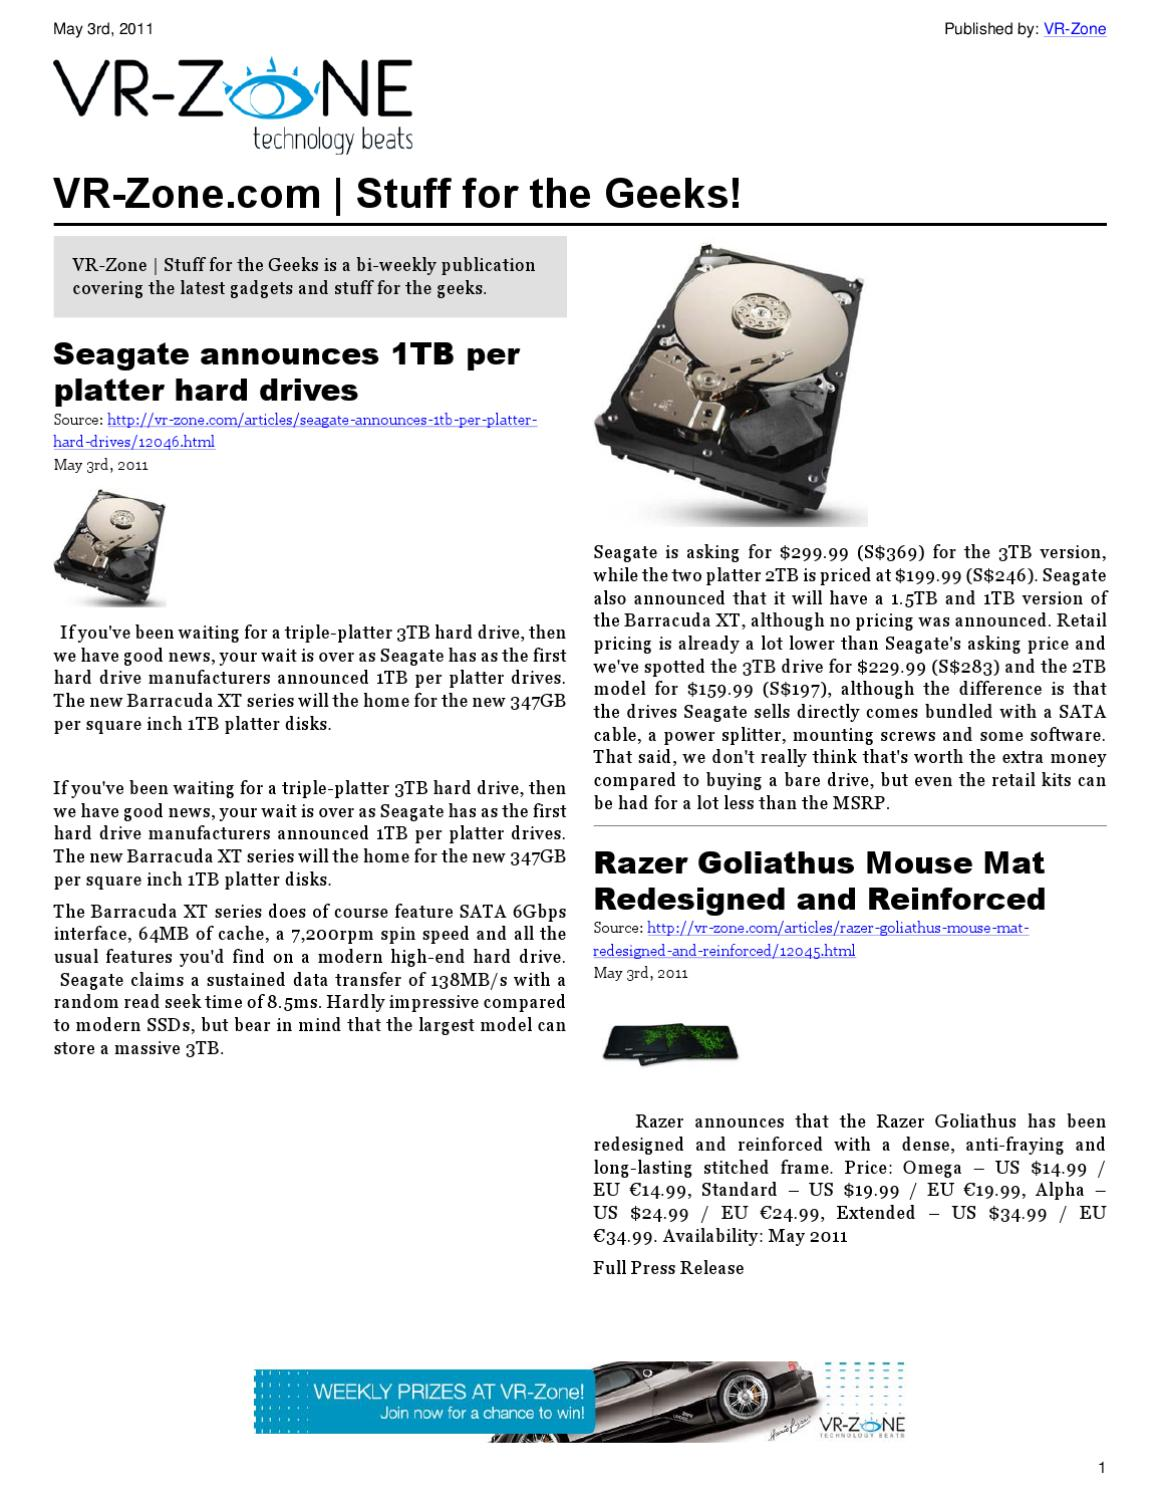 VR-Zone Technology News | Stuff for the Geeks! by VR Media